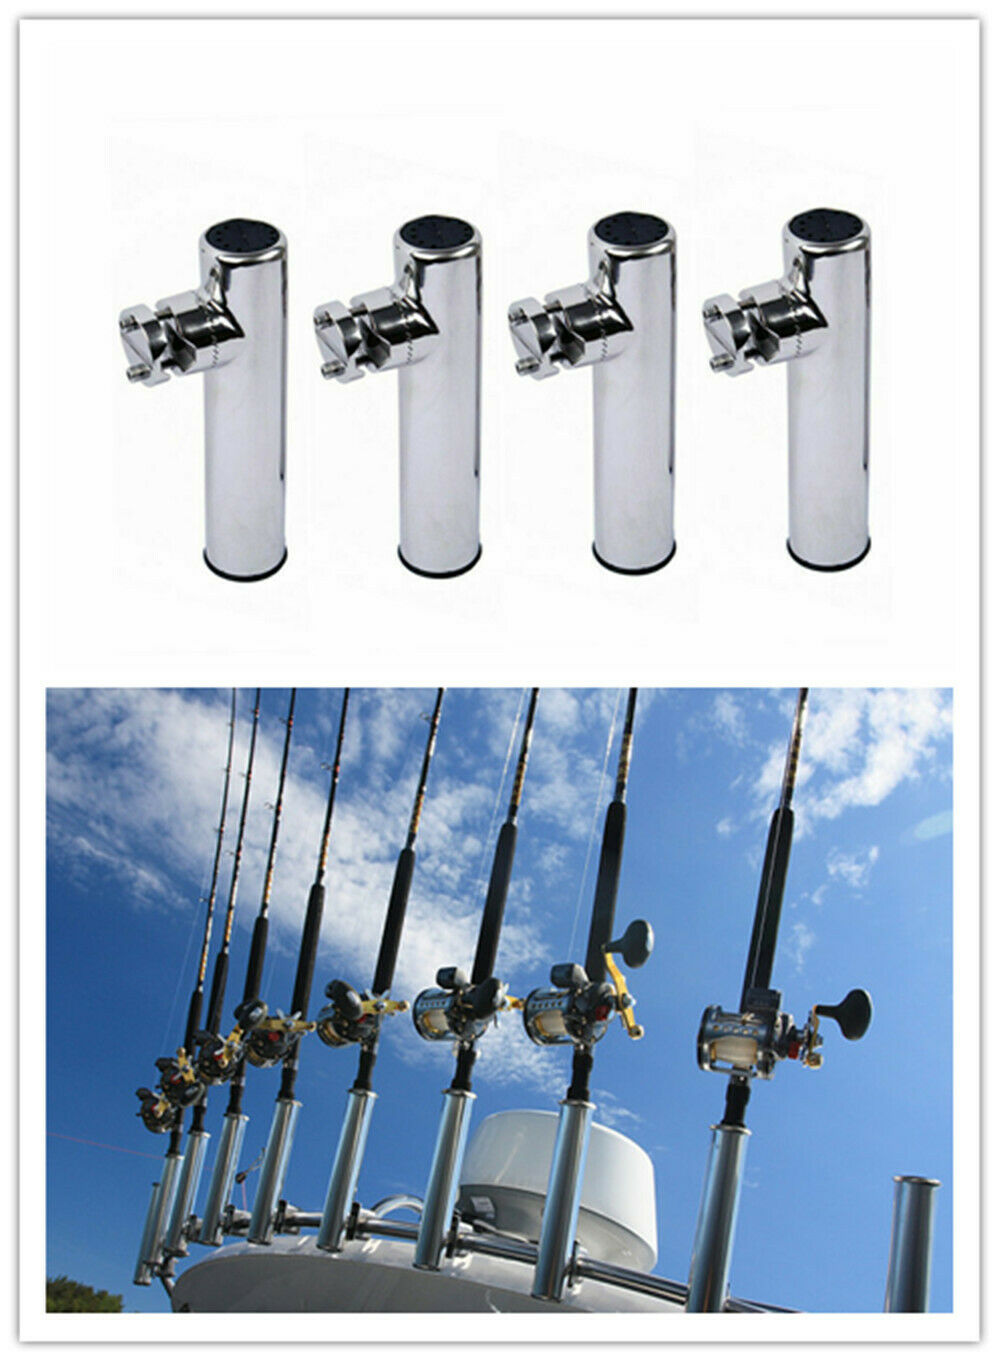 4PCS Boat Fishing Rod Holder Clampon 781 Rail Rod Pole Rest Stainless Steel